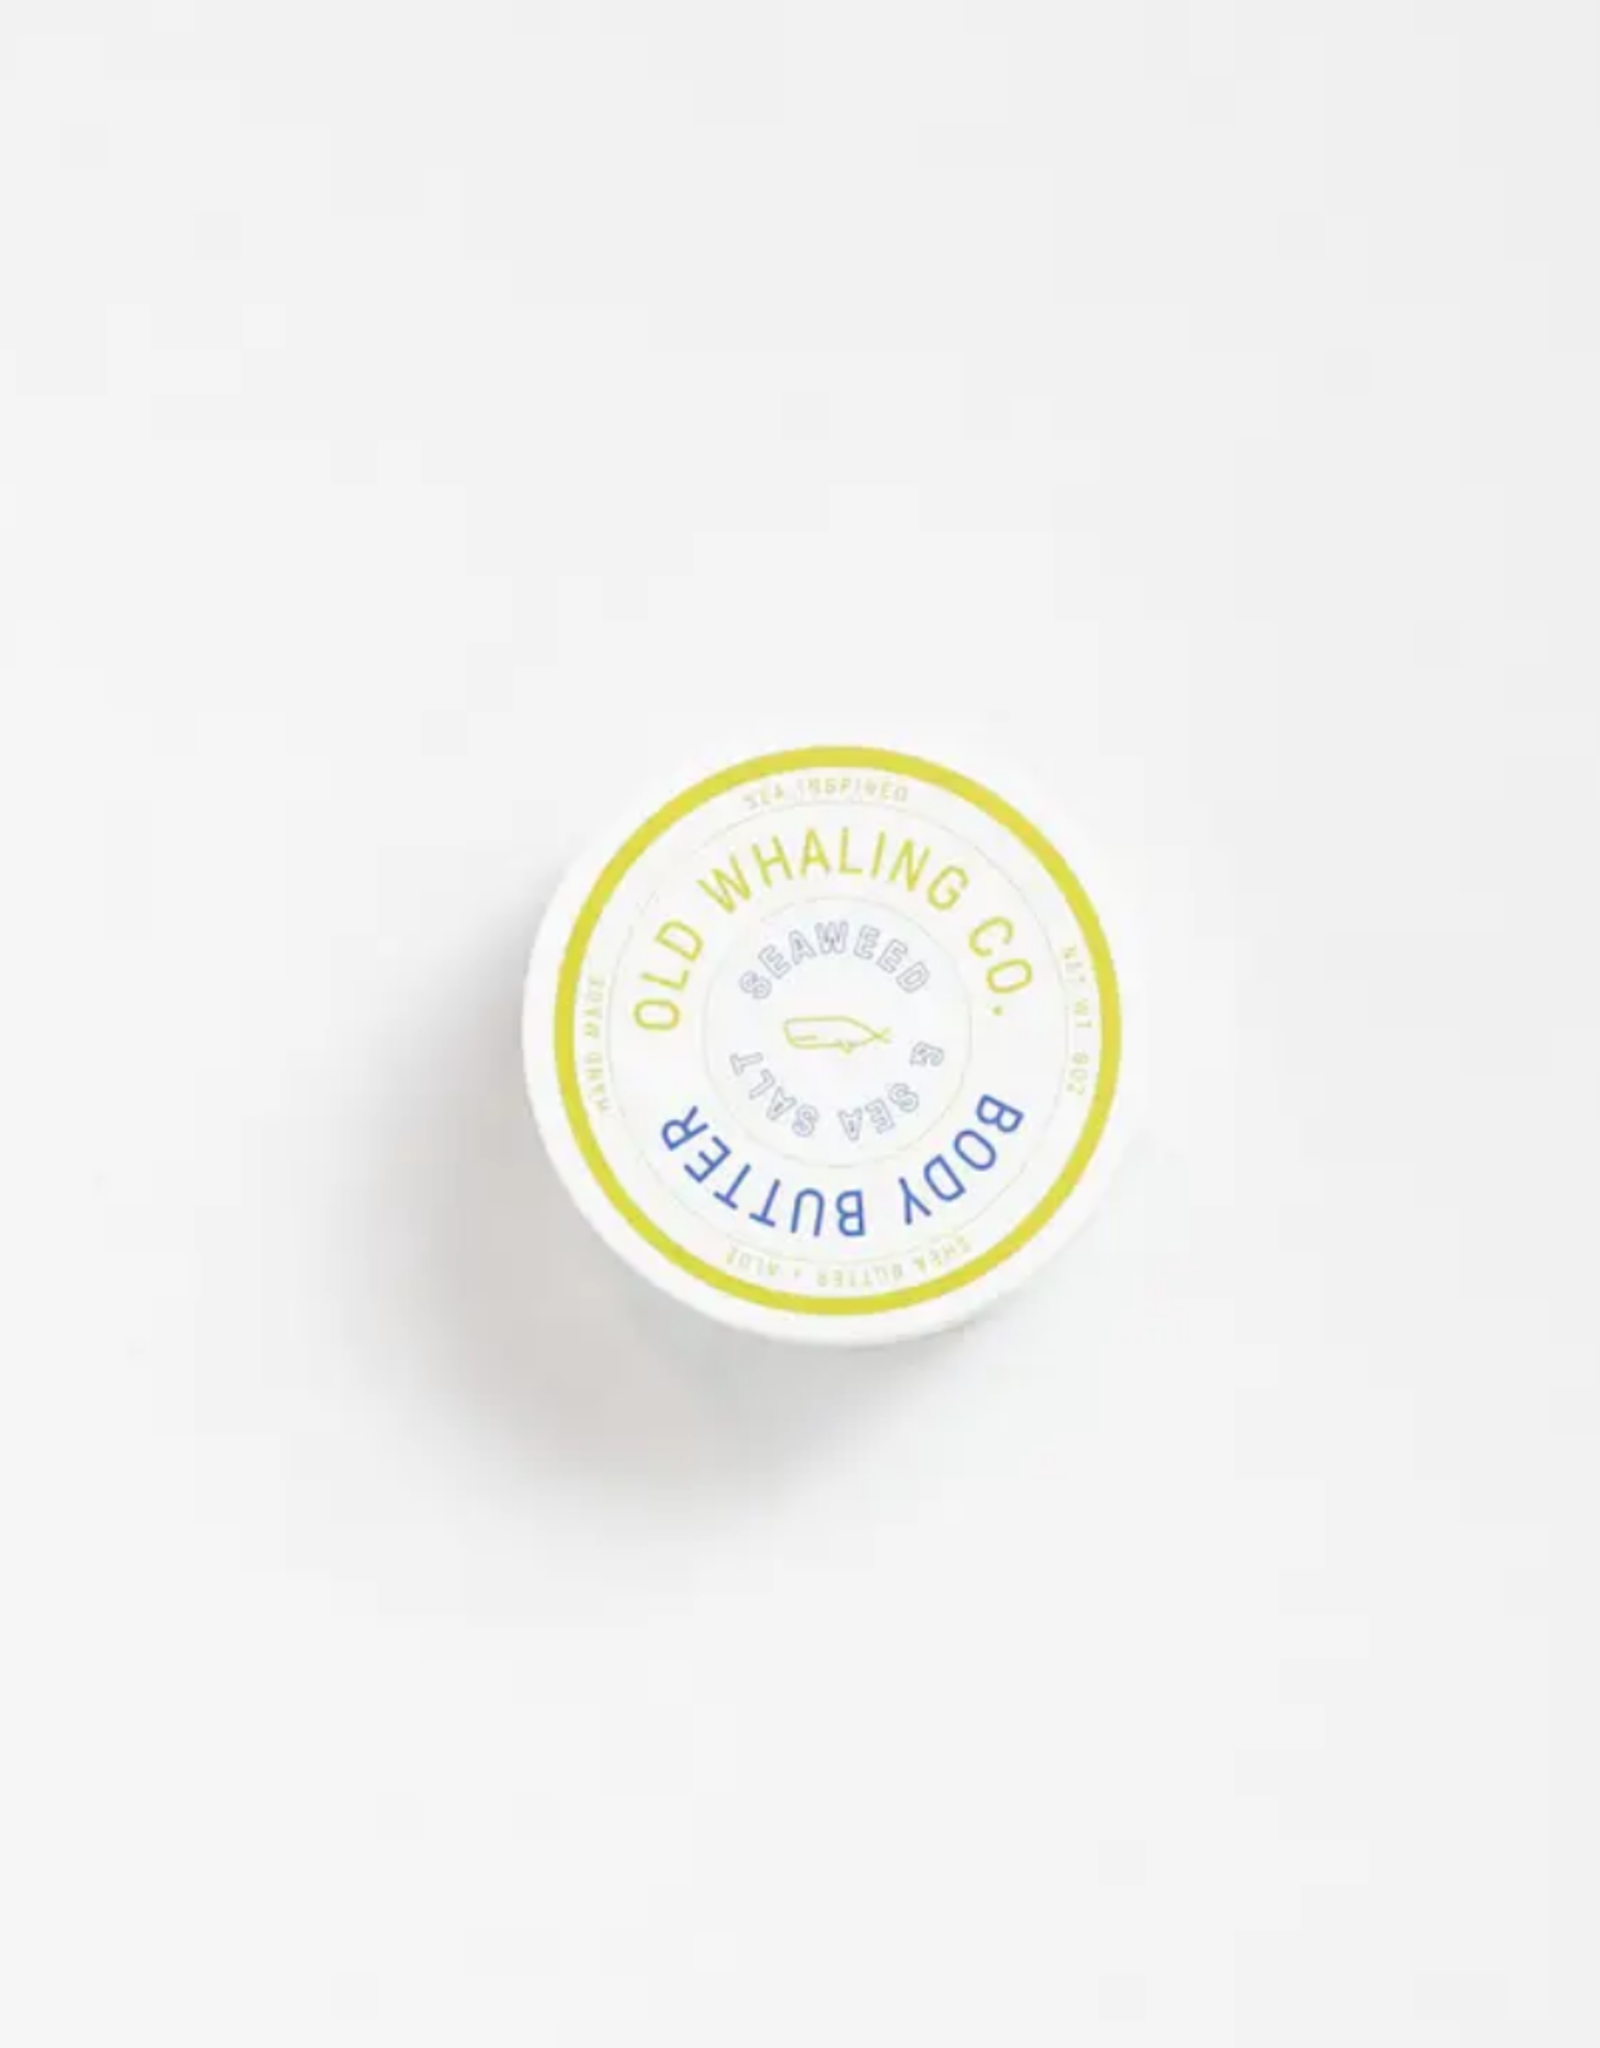 Old Whaling Company Old Whaling Body Butter (Full Size)